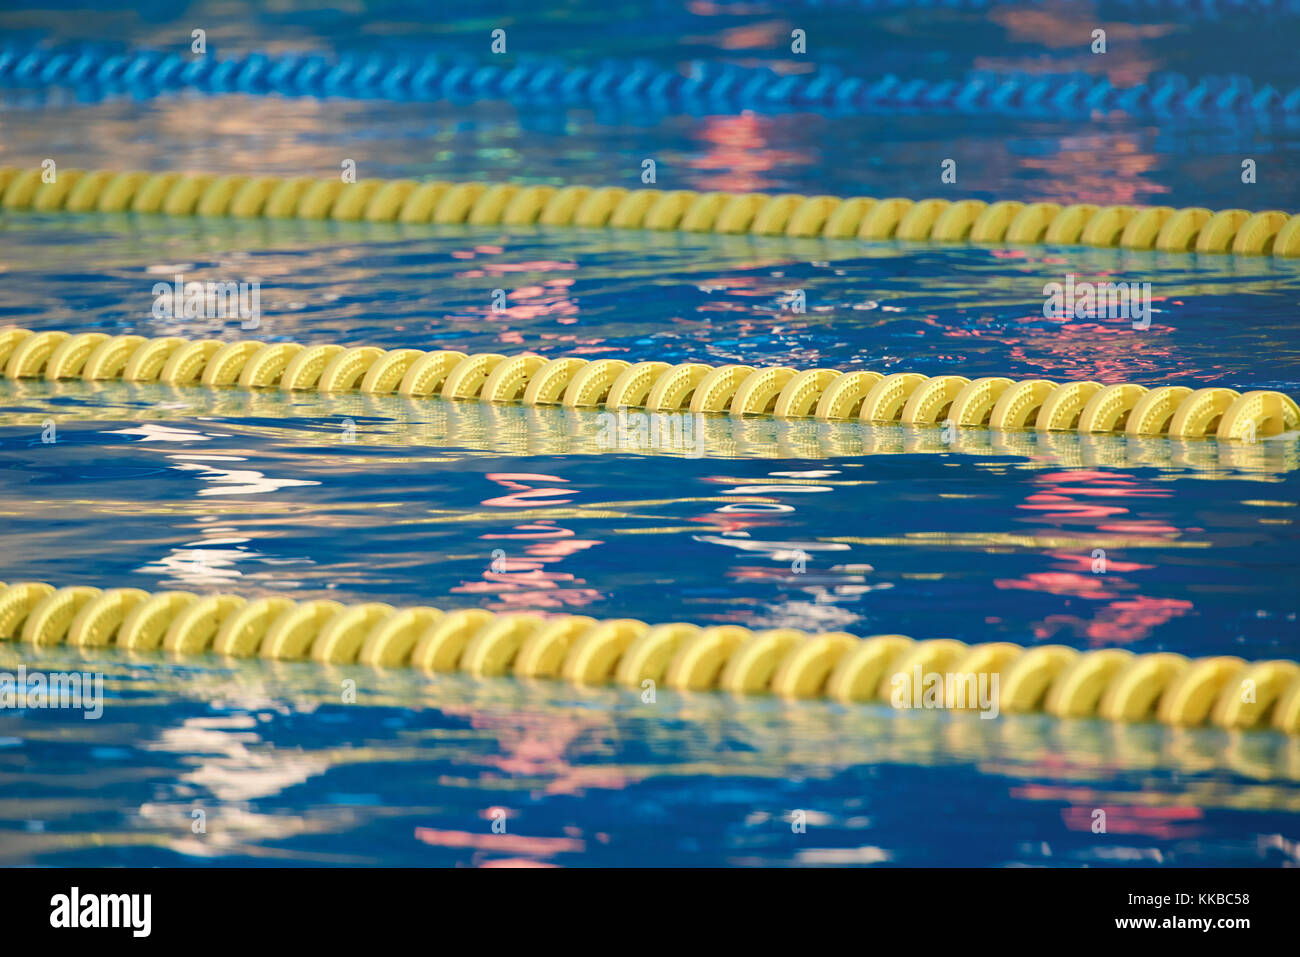 Olympic swimming pool empty stock photos olympic swimming pool empty stock images alamy - Olympic swimming pool lanes ...